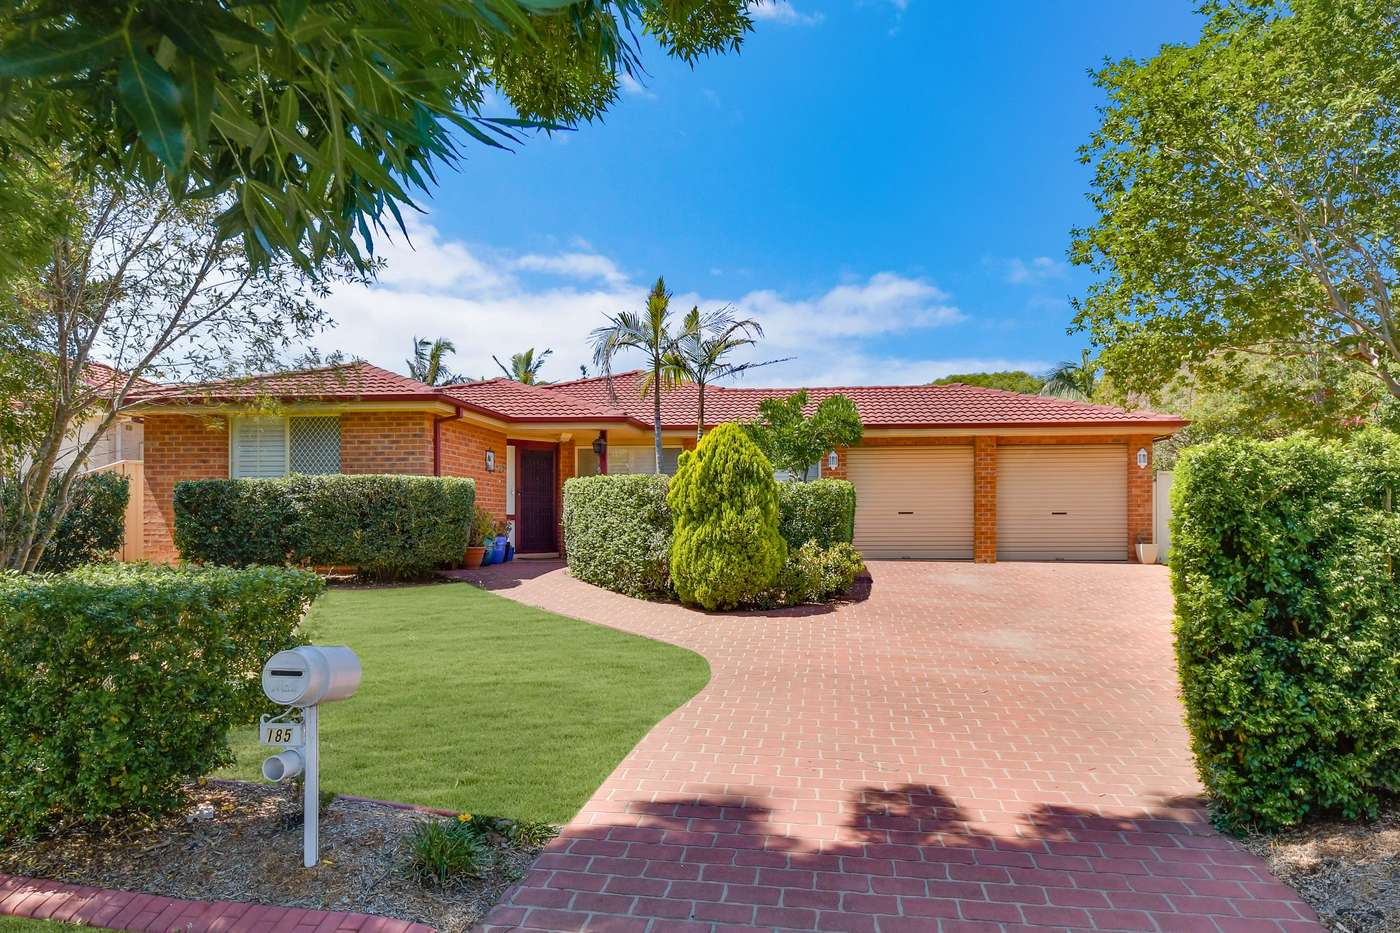 Main view of Homely house listing, 185 Mount Annan Drive, Mount Annan, NSW 2567